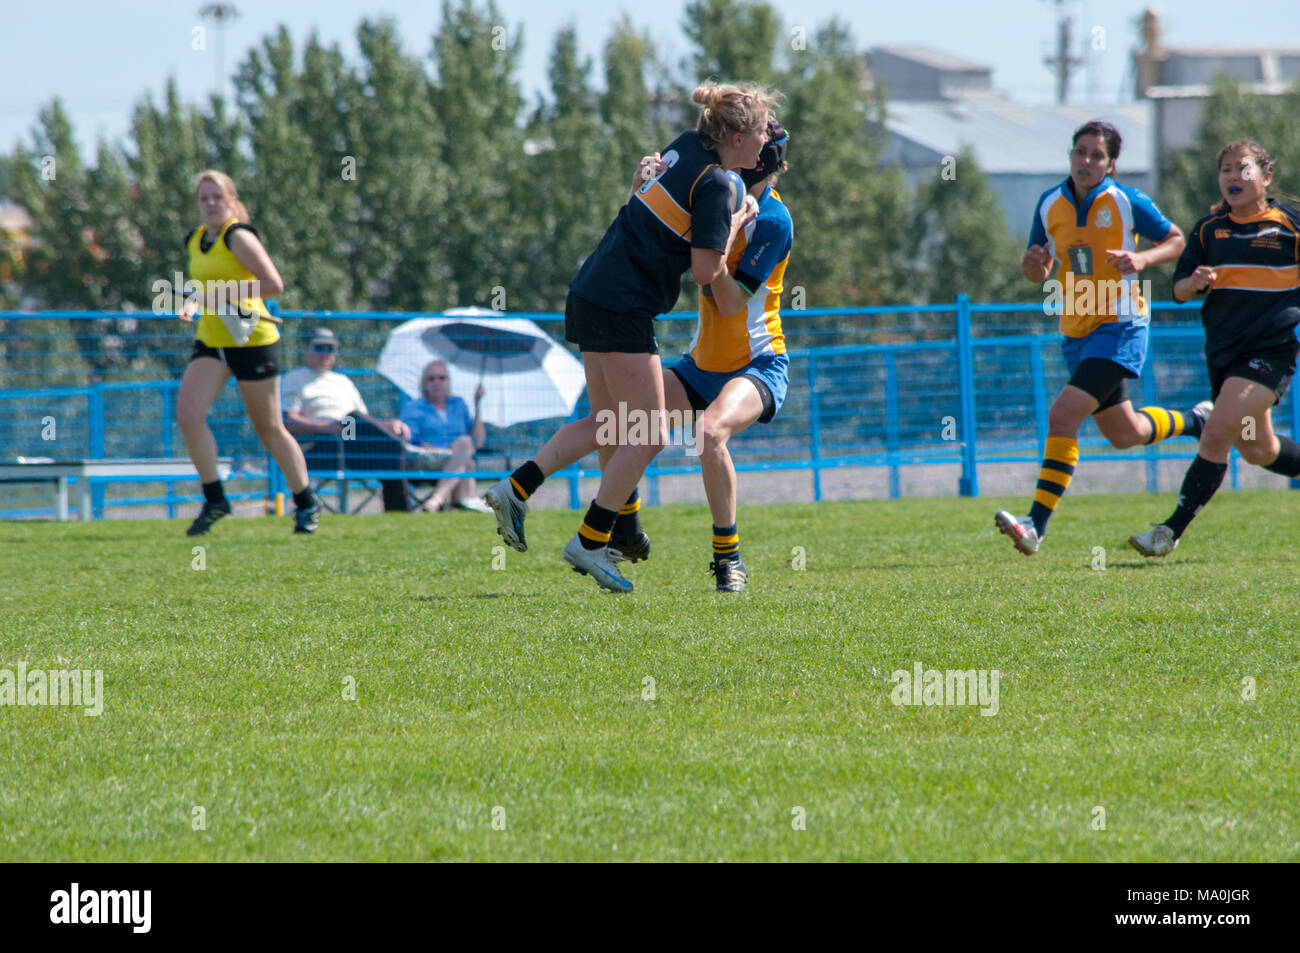 Two players collide in the Alberta Women's Premiership Championship Match between the Calgary Hornets and the Edmonton Lep-Tigers at the Calgary Rugby - Stock Image